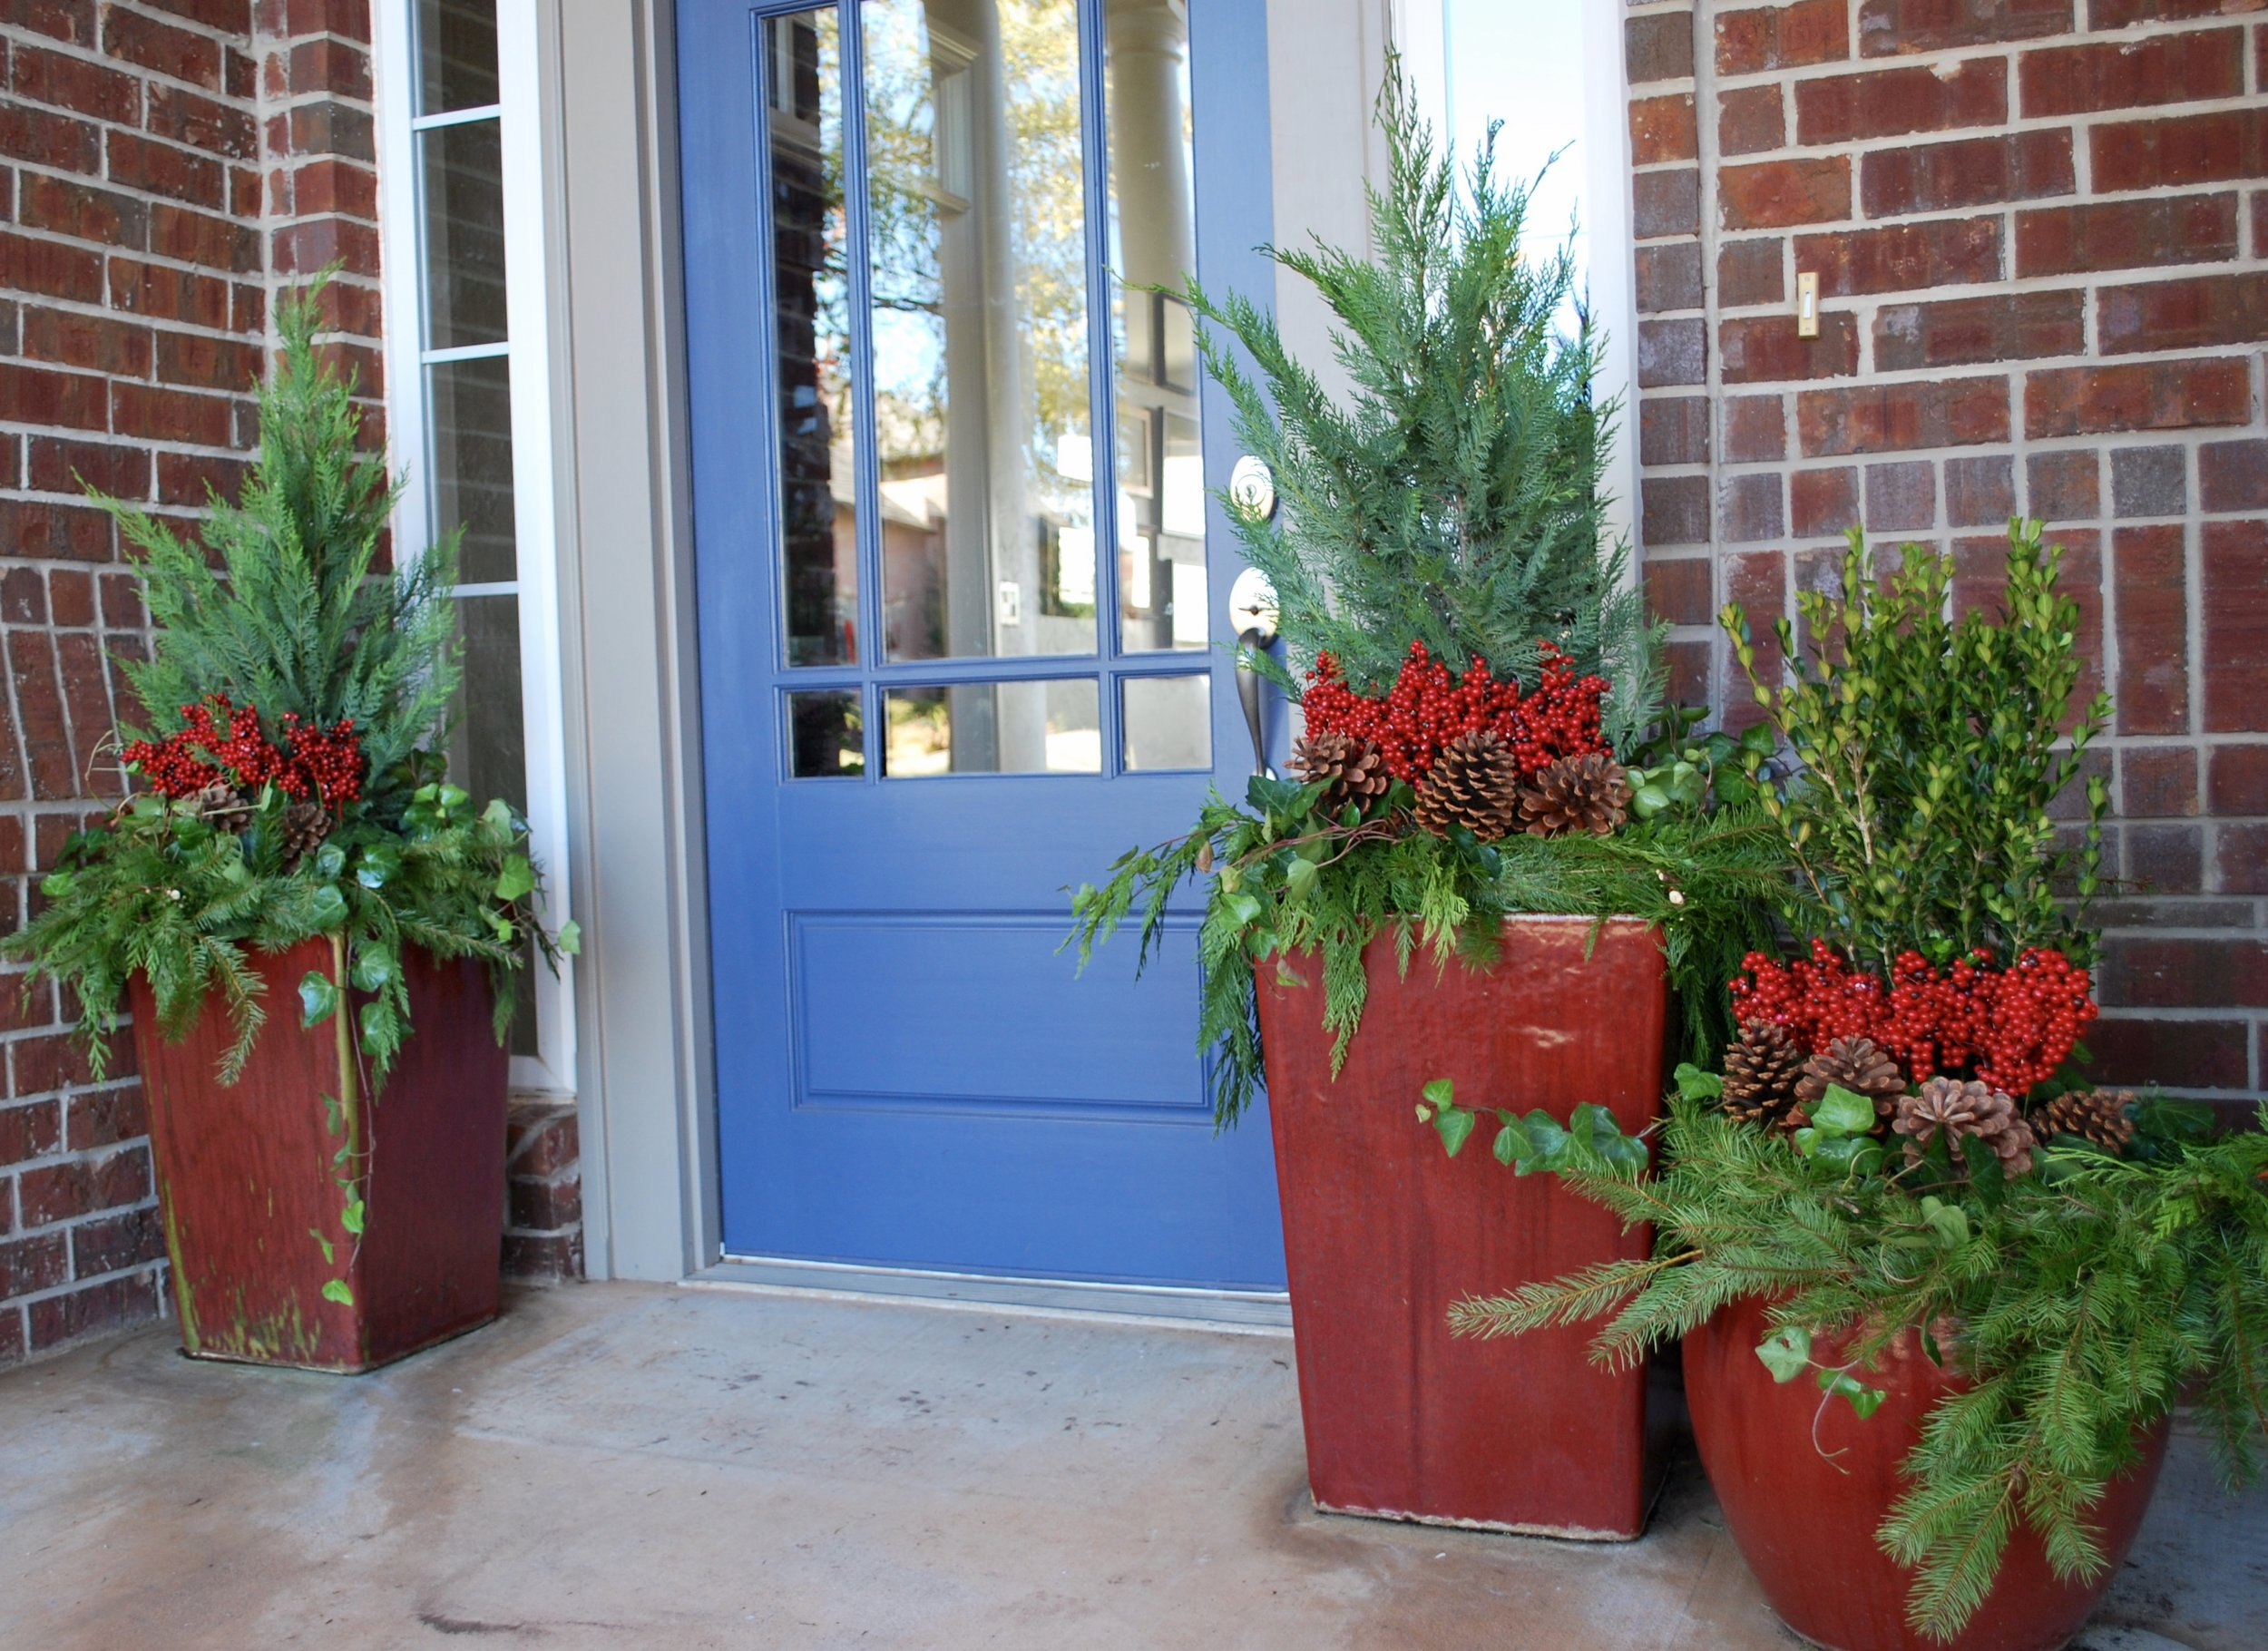 """Holiday Container GARDEN Design 101   Hooray! The holidays are almost here! Time to get your front entry and outdoor planters looking festive for the season.  Let's talk holiday container garden design. We use the """"thriller, filler, spiller"""" design theory. The """"thriller"""" is the one tall plant in the middle that gives the arrangement height. Evergreens are our """"thriller"""" of choice for winter planters, but other good """"thriller"""" options are red or yellow twig dogwood sticks or birch poles. Depending on the size of the planter, some good evergreen options are leland cypress, boxwood, juniper and dwarf alberta spruce. Next comes the """"filler"""" which fills in around the middle of the planter. Our favorite """"fillers"""" for the holidays are pinecones, berries and ornaments. Lastly, come the """"spillers"""" which cascade over the sides of the planter. Great """"spiller"""" options for winter are english ivy, vinca minor and/or fresh evergreen garland. If you use fresh garland or any live evergreen branches make sure to spray them with Wilt-Pruf when you do the installation and keep them misted with water throughout the holiday season so they don't dry out.  In the picture above, we've used 2 leland cypress and boxwood as the thrillers, pinecones and berries as fillers and ivy and garland as spillers. Doesn't it look festive for the holidays? Once the holidays are over, just remove the pinecones, berries and garland and the evergreen and english ivy will look great all winter long."""